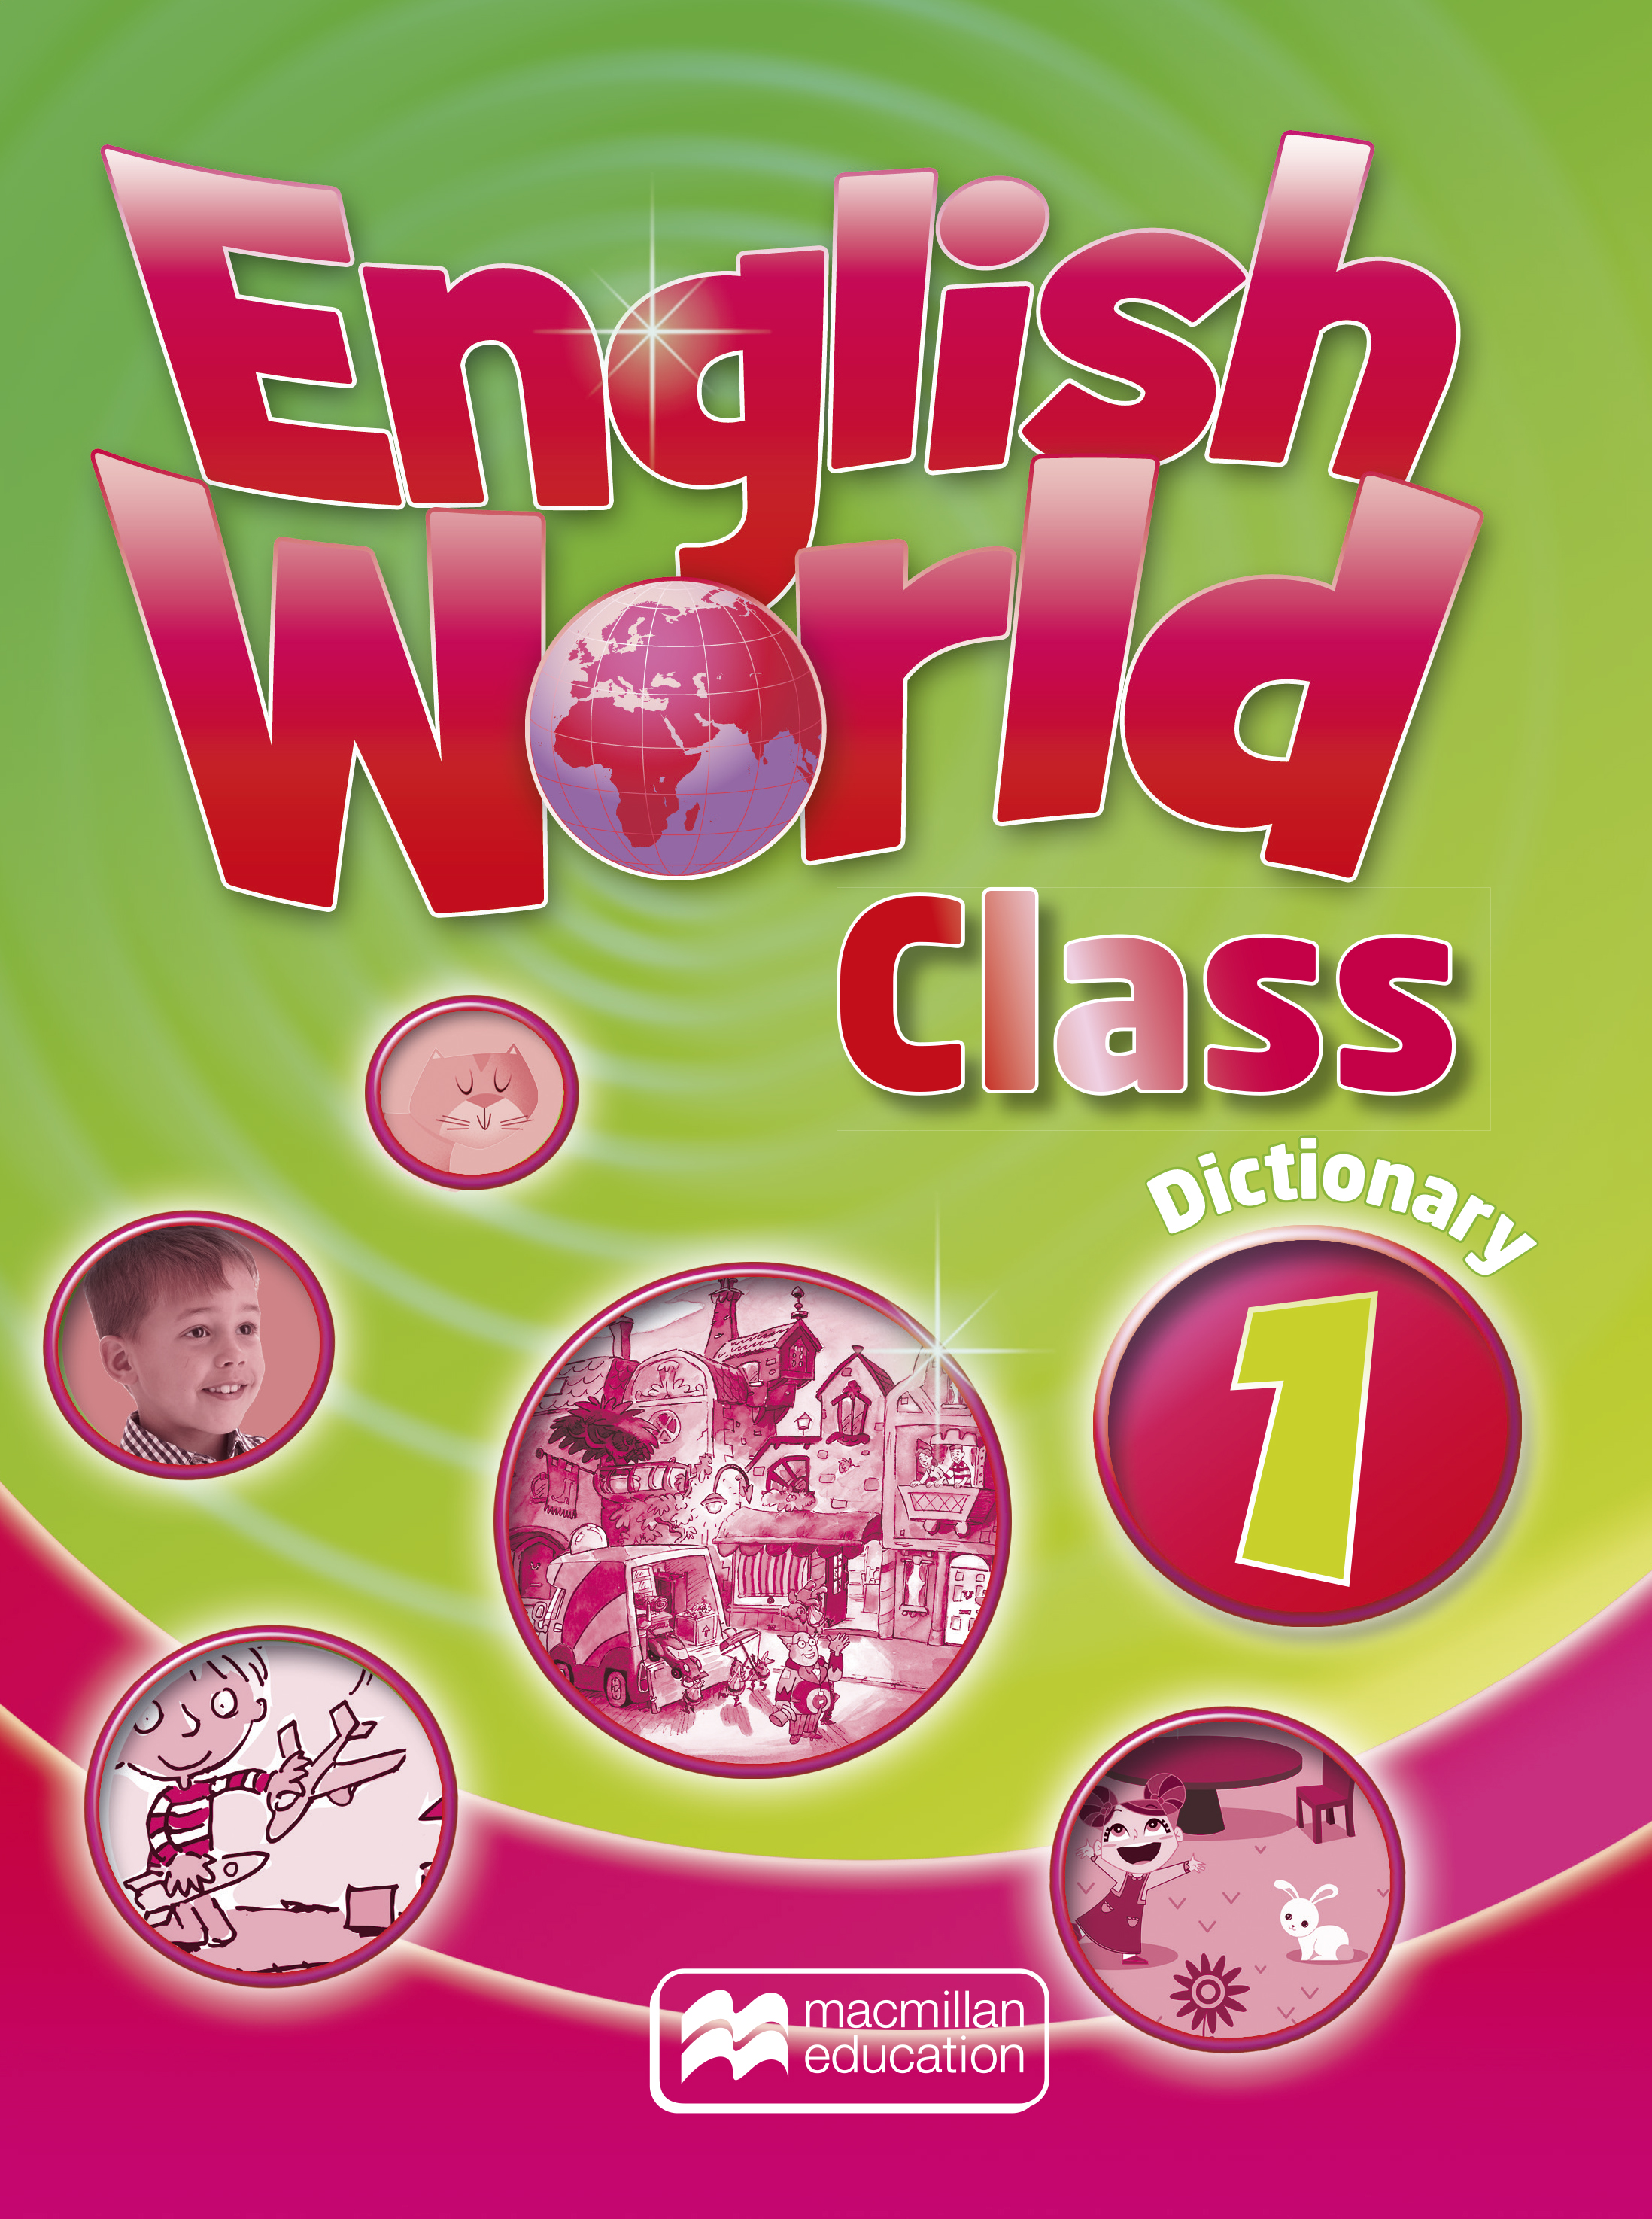 English World Class Level 1 Dictionary